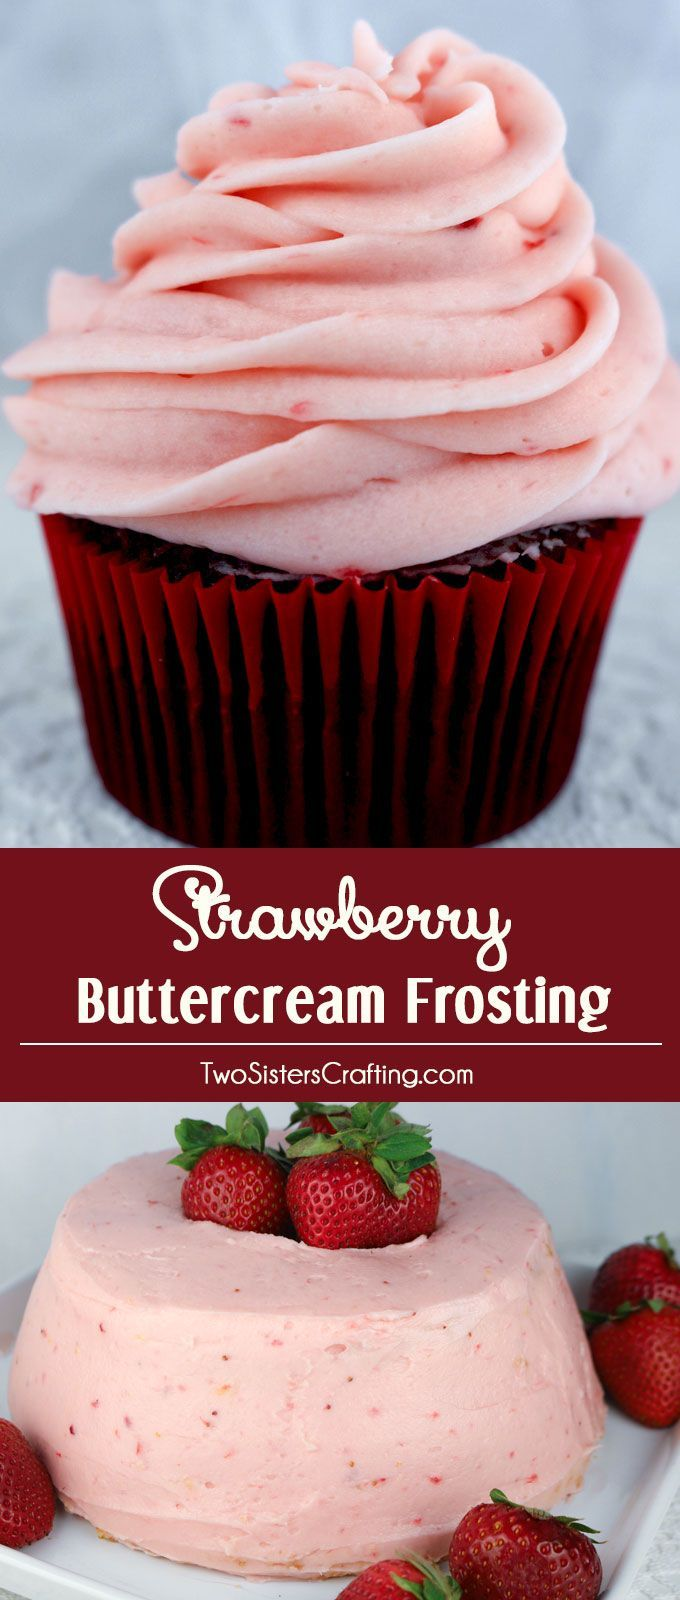 100+ Strawberry Frosting Recipes on Pinterest Strawberry ...